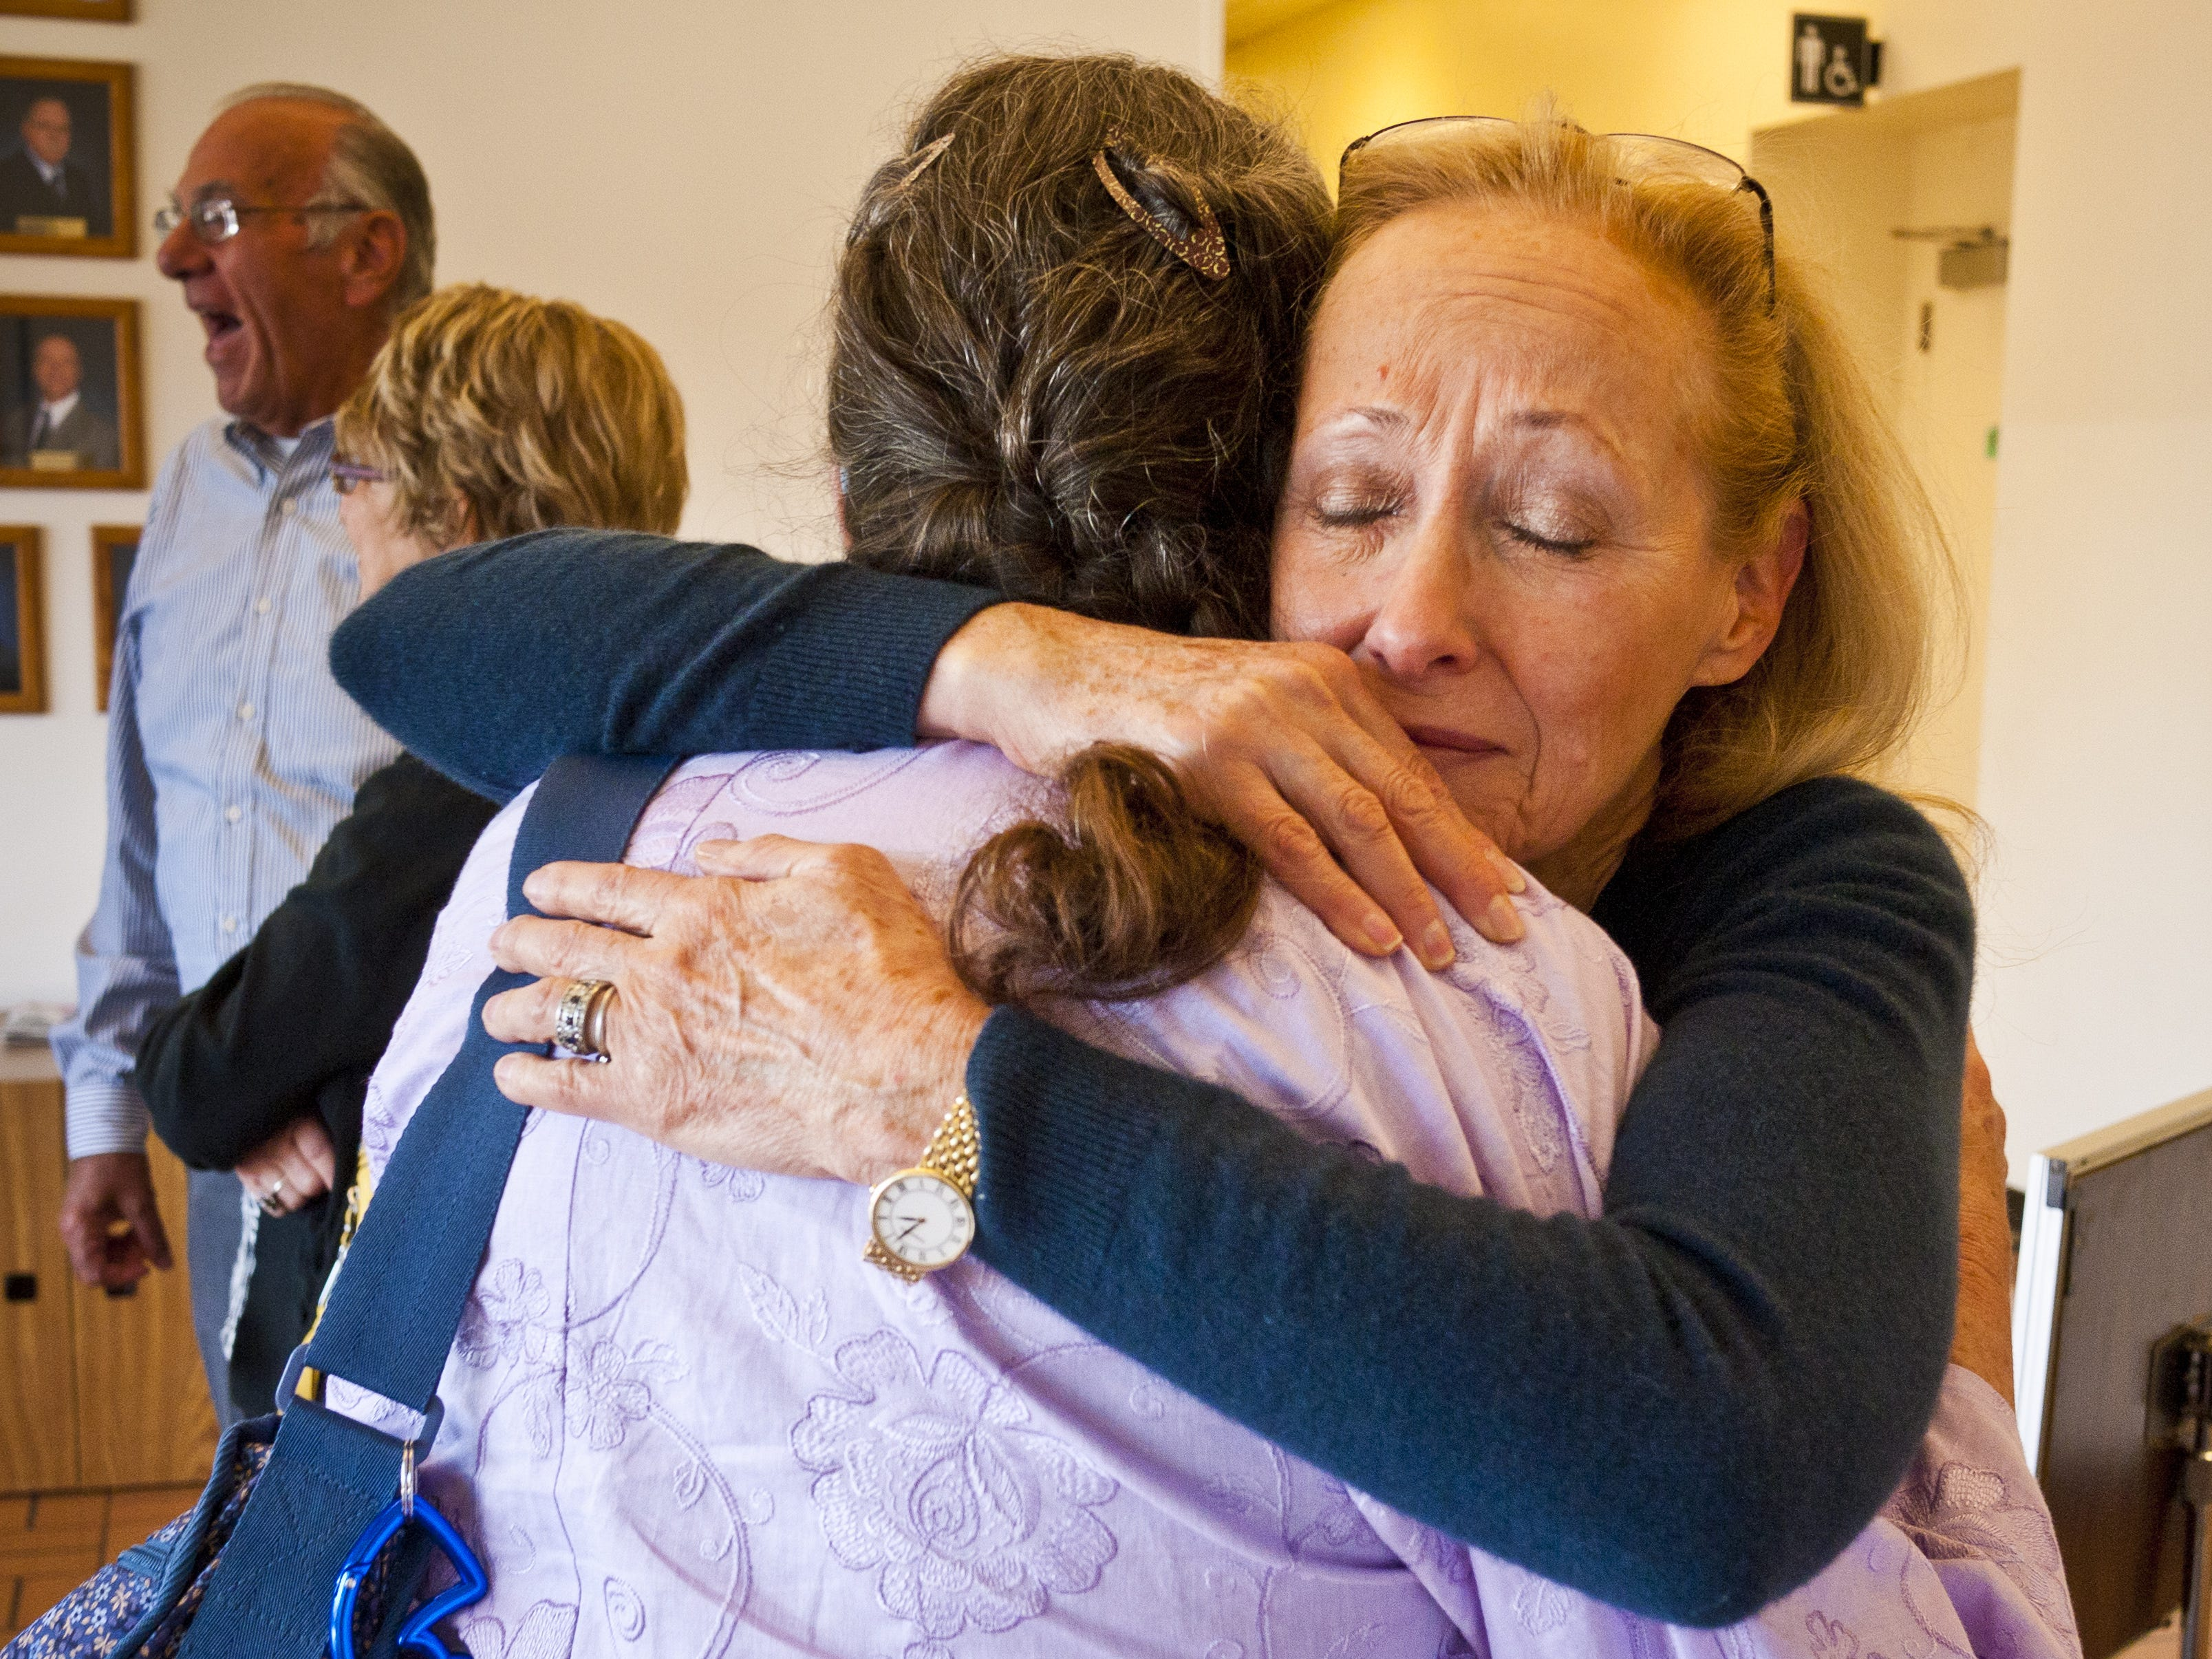 Louise Kane is comforted by Paulene Thompson, a family friend, in May 2011 after parole was denied for Jacob Wideman, who killed Kane's son, Eric, at the Arizona Board of Executive Clemency (Parole Board) in Phoenix.